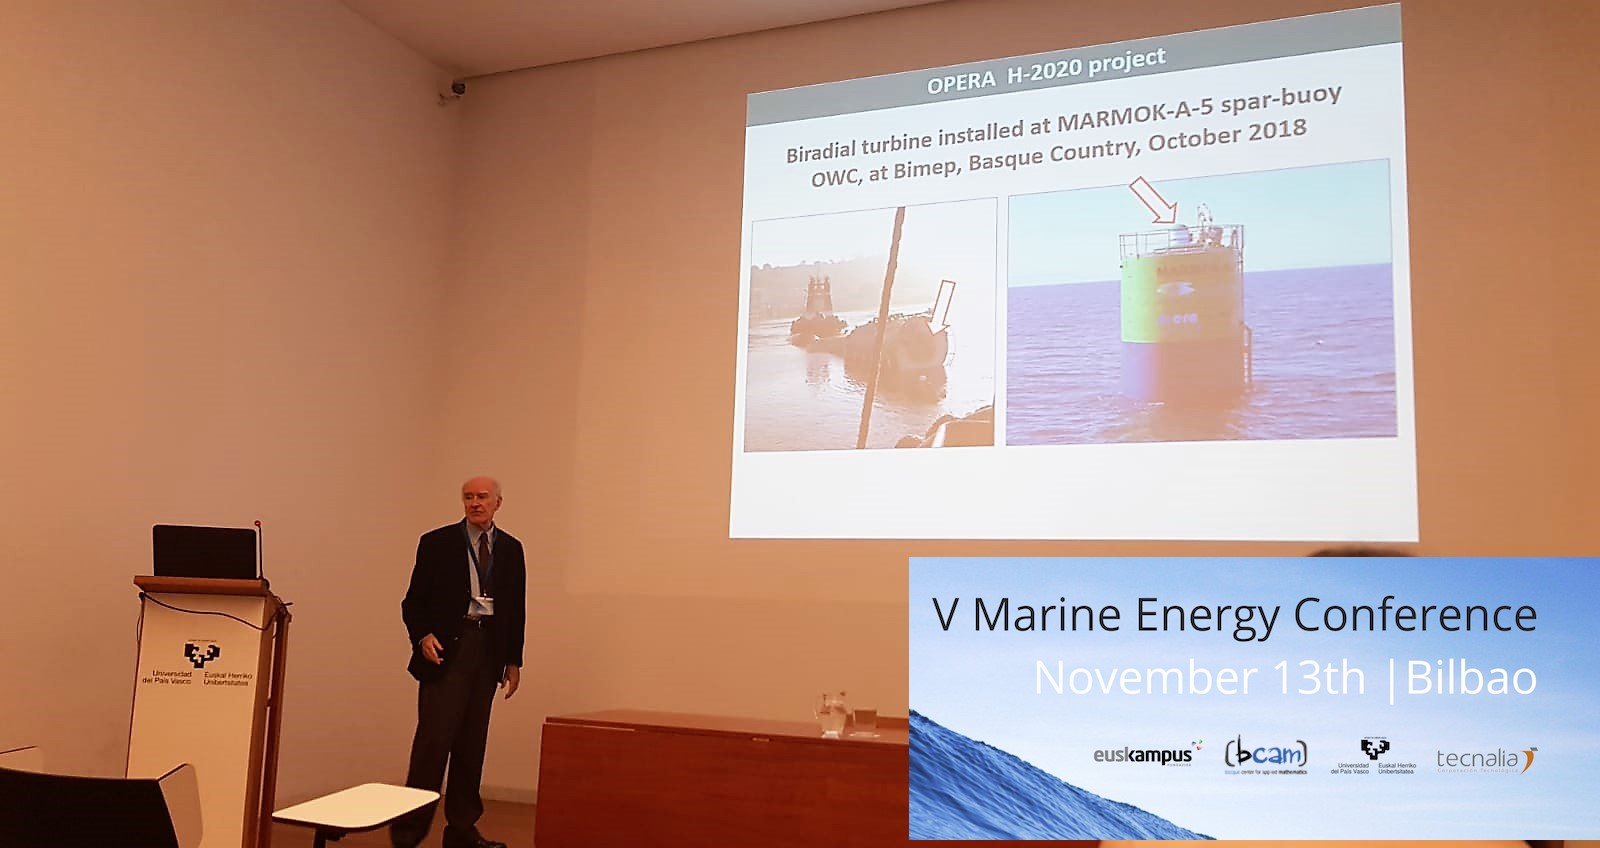 marine energy conference poster